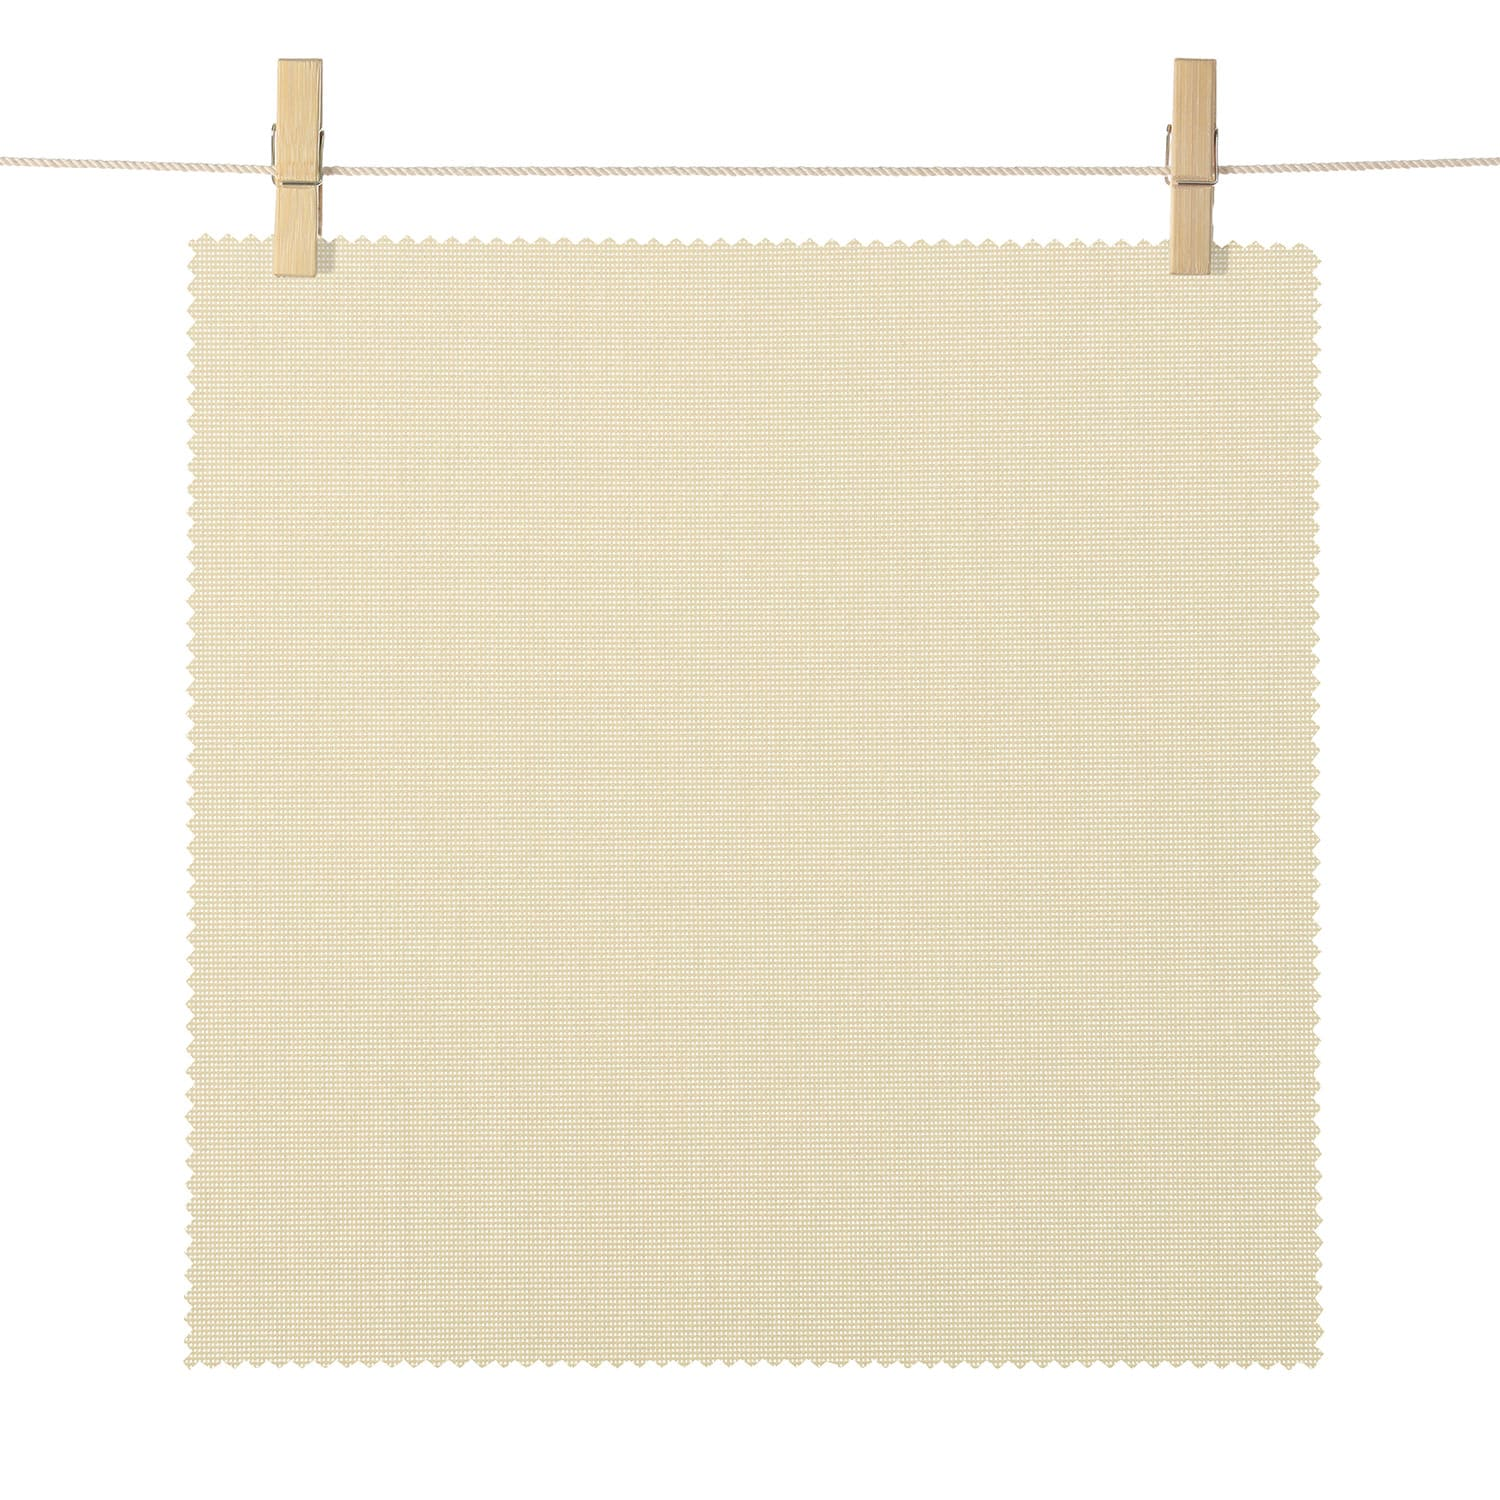 Burbank Tan TabbyWeave Textured Semi Sheer Roller Shade Swatch